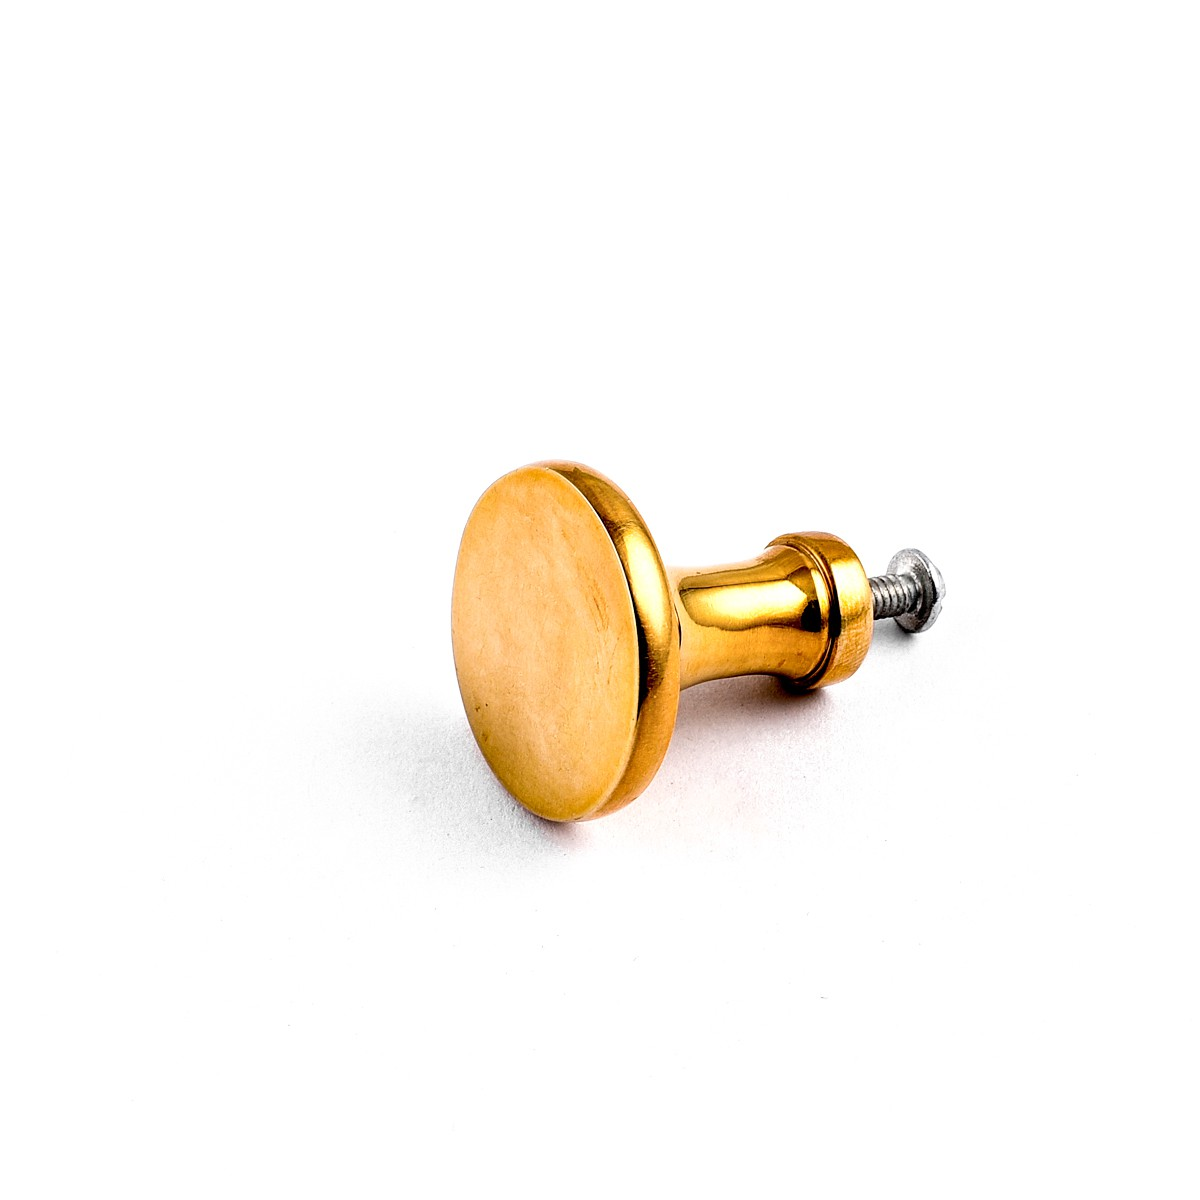 6 Cabinet Knob Bright Solid Brass Pedestal 1 14 Brass Kitchen Cabinet Hardware Pull Knobs Traditional Cabinetry remodel